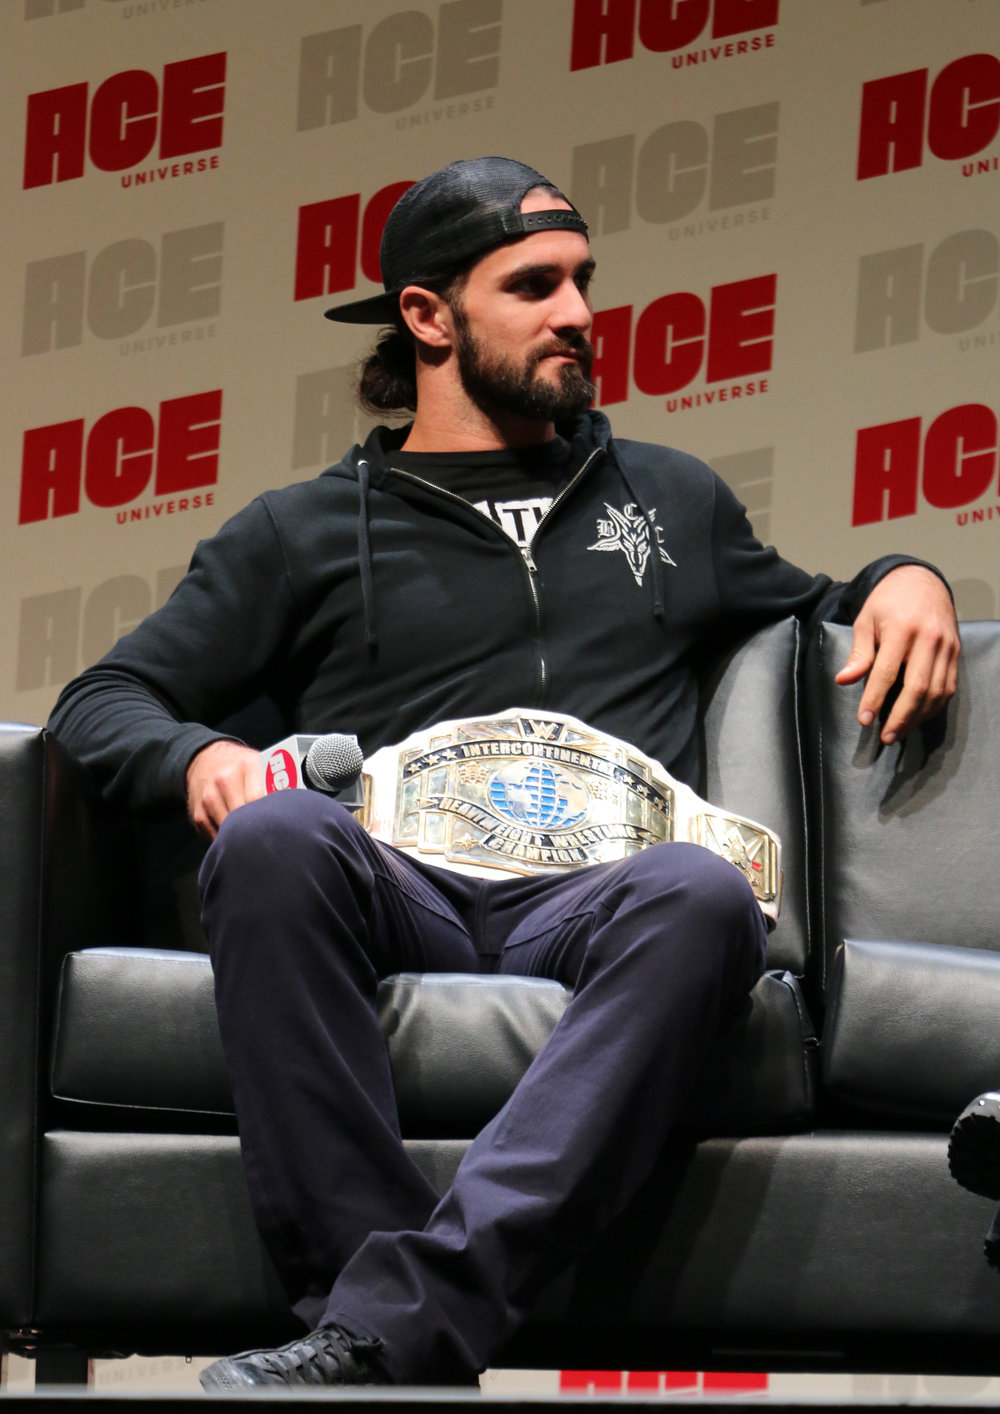 WWE Intercontinental Champion Seth Rollins awaits a question during the WWE panel.